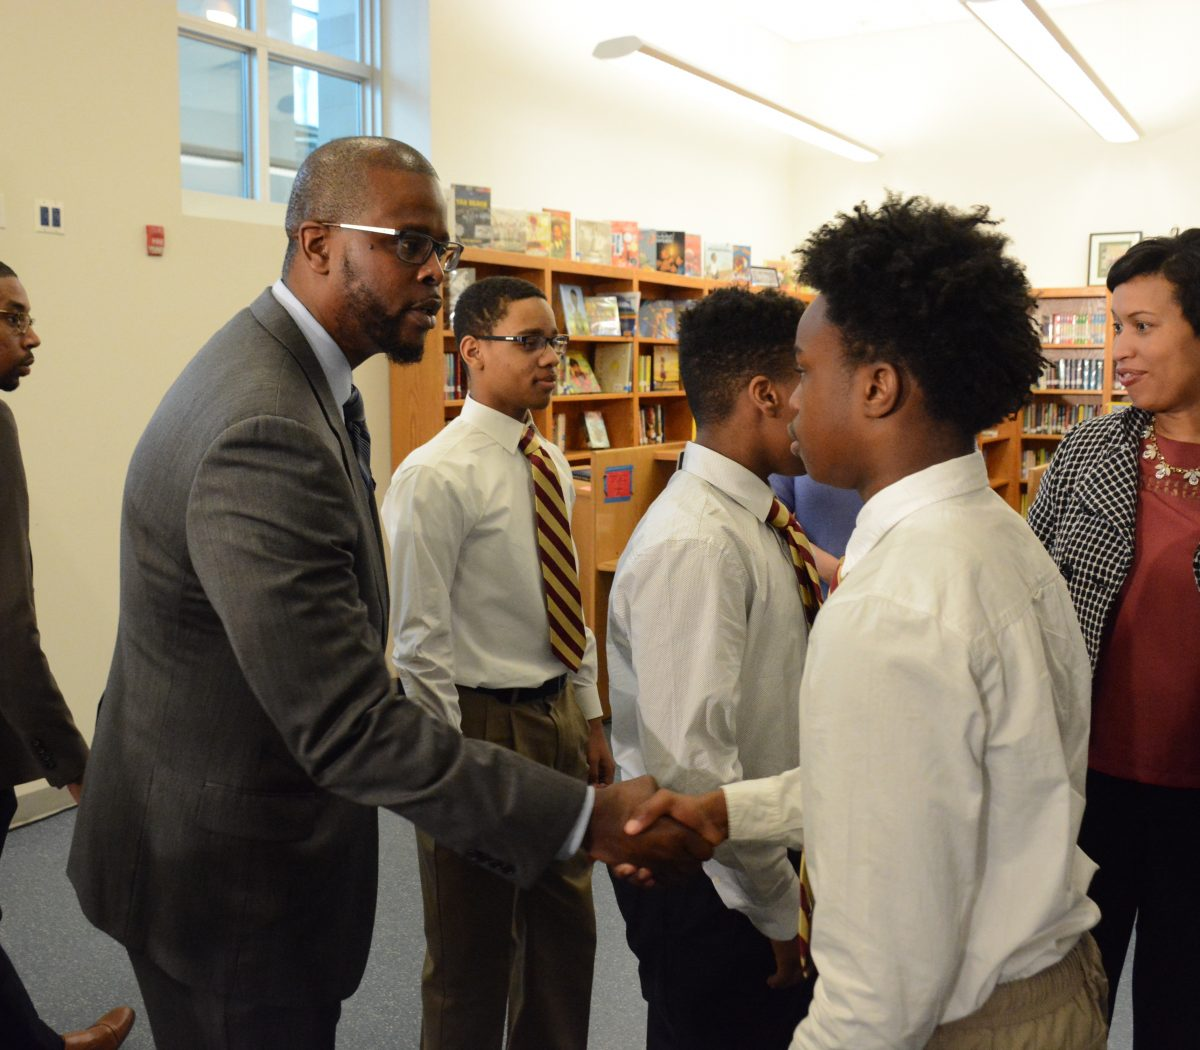 DCPS Chancellor Antwan Wilson greets students at the Emerging Men of Color program at Alice Deal Middle School in Northwest on February 1, 2017. /Photo by Roy Lewis